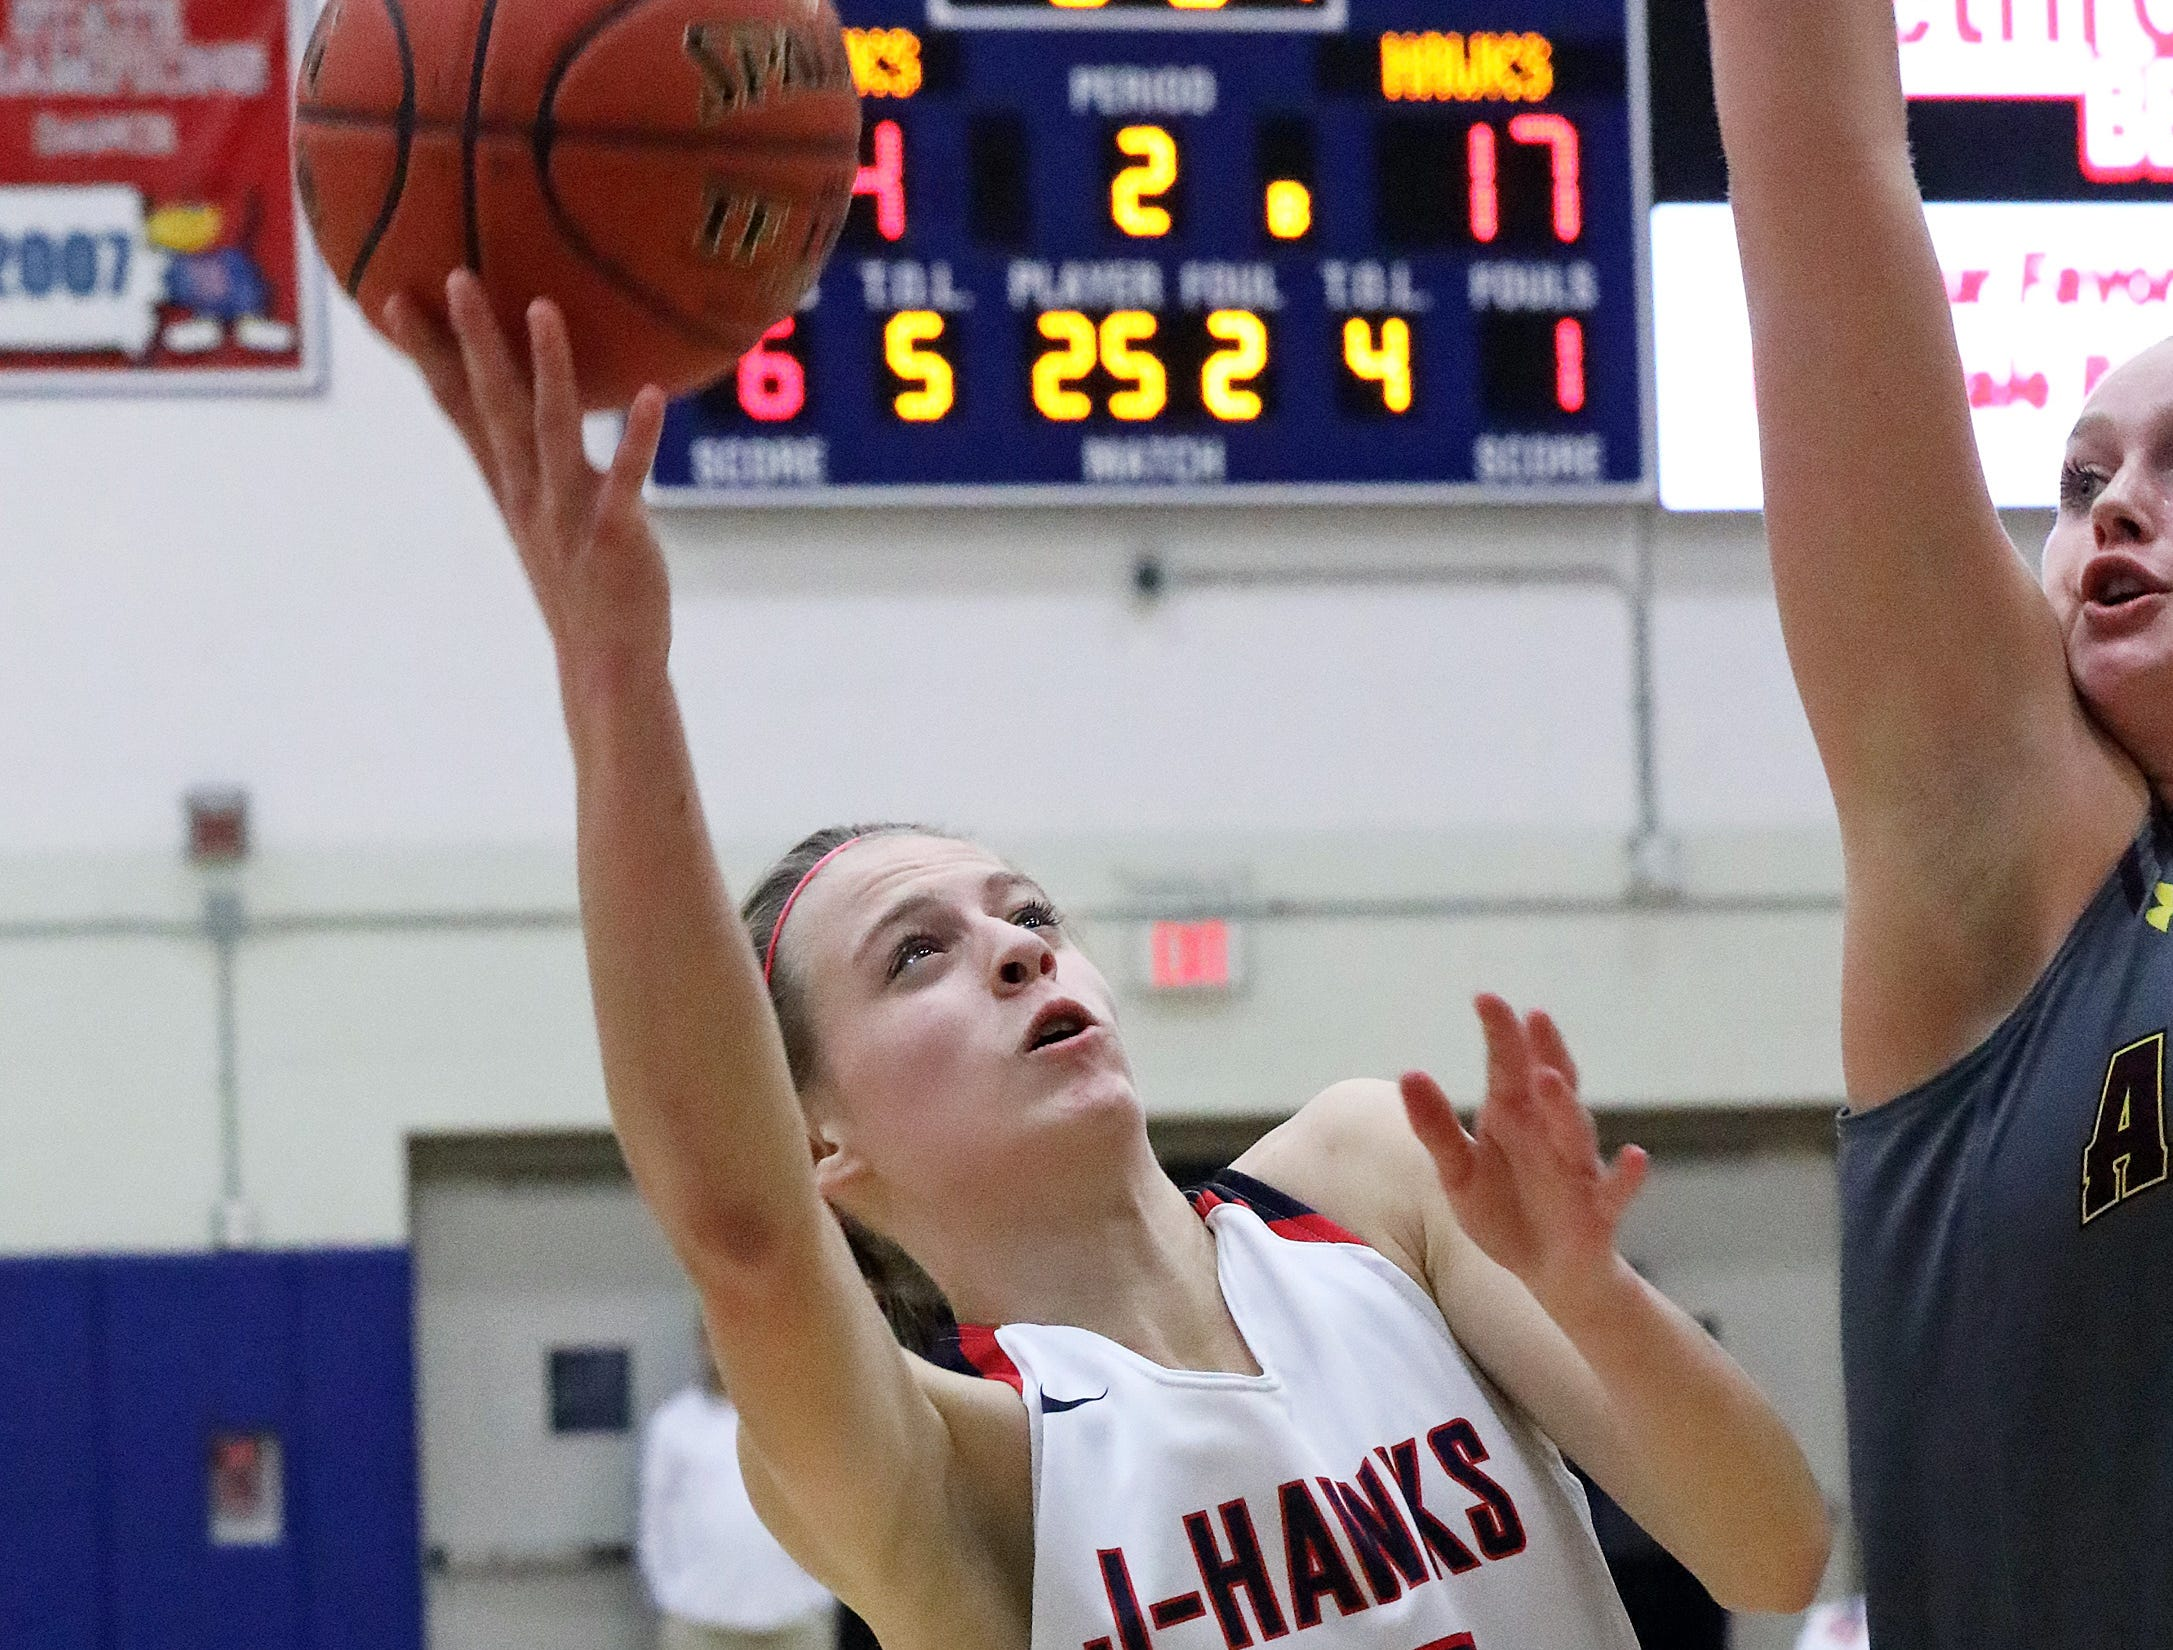 Urbandale sophomore guard Macy Gaskill works past the tough defense for a shot as the Ankeny Hawkettes compete against the Urbandale J-Hawks in high school basketball on Friday, Dec.14, 2018 at Urbandale High School. Ankeny won 46 to 40.